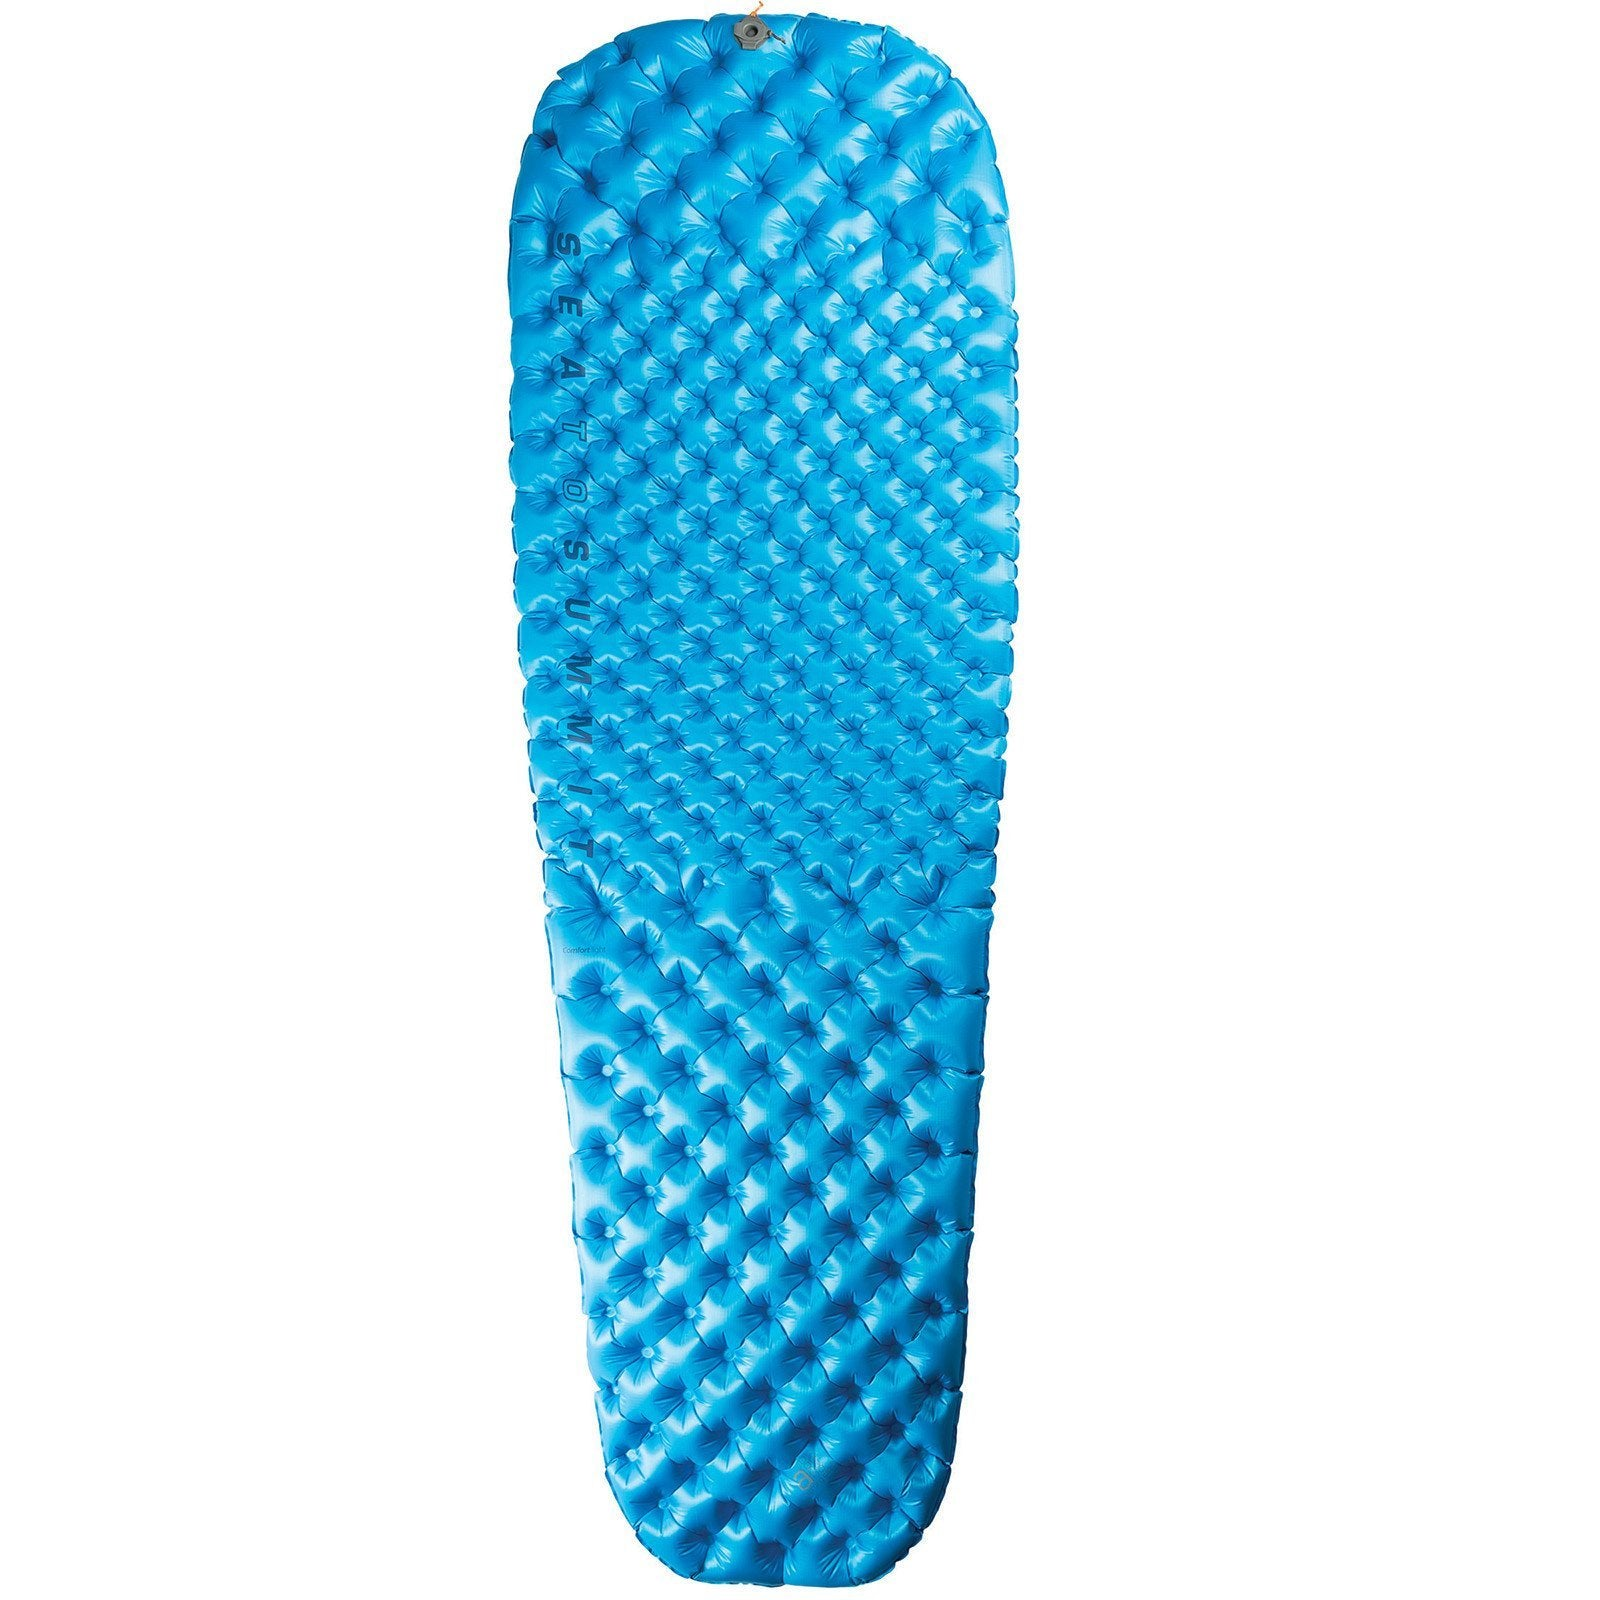 Sea to Summit Comfort Light camping Mat, shown inflated and laid flat, in blue colour